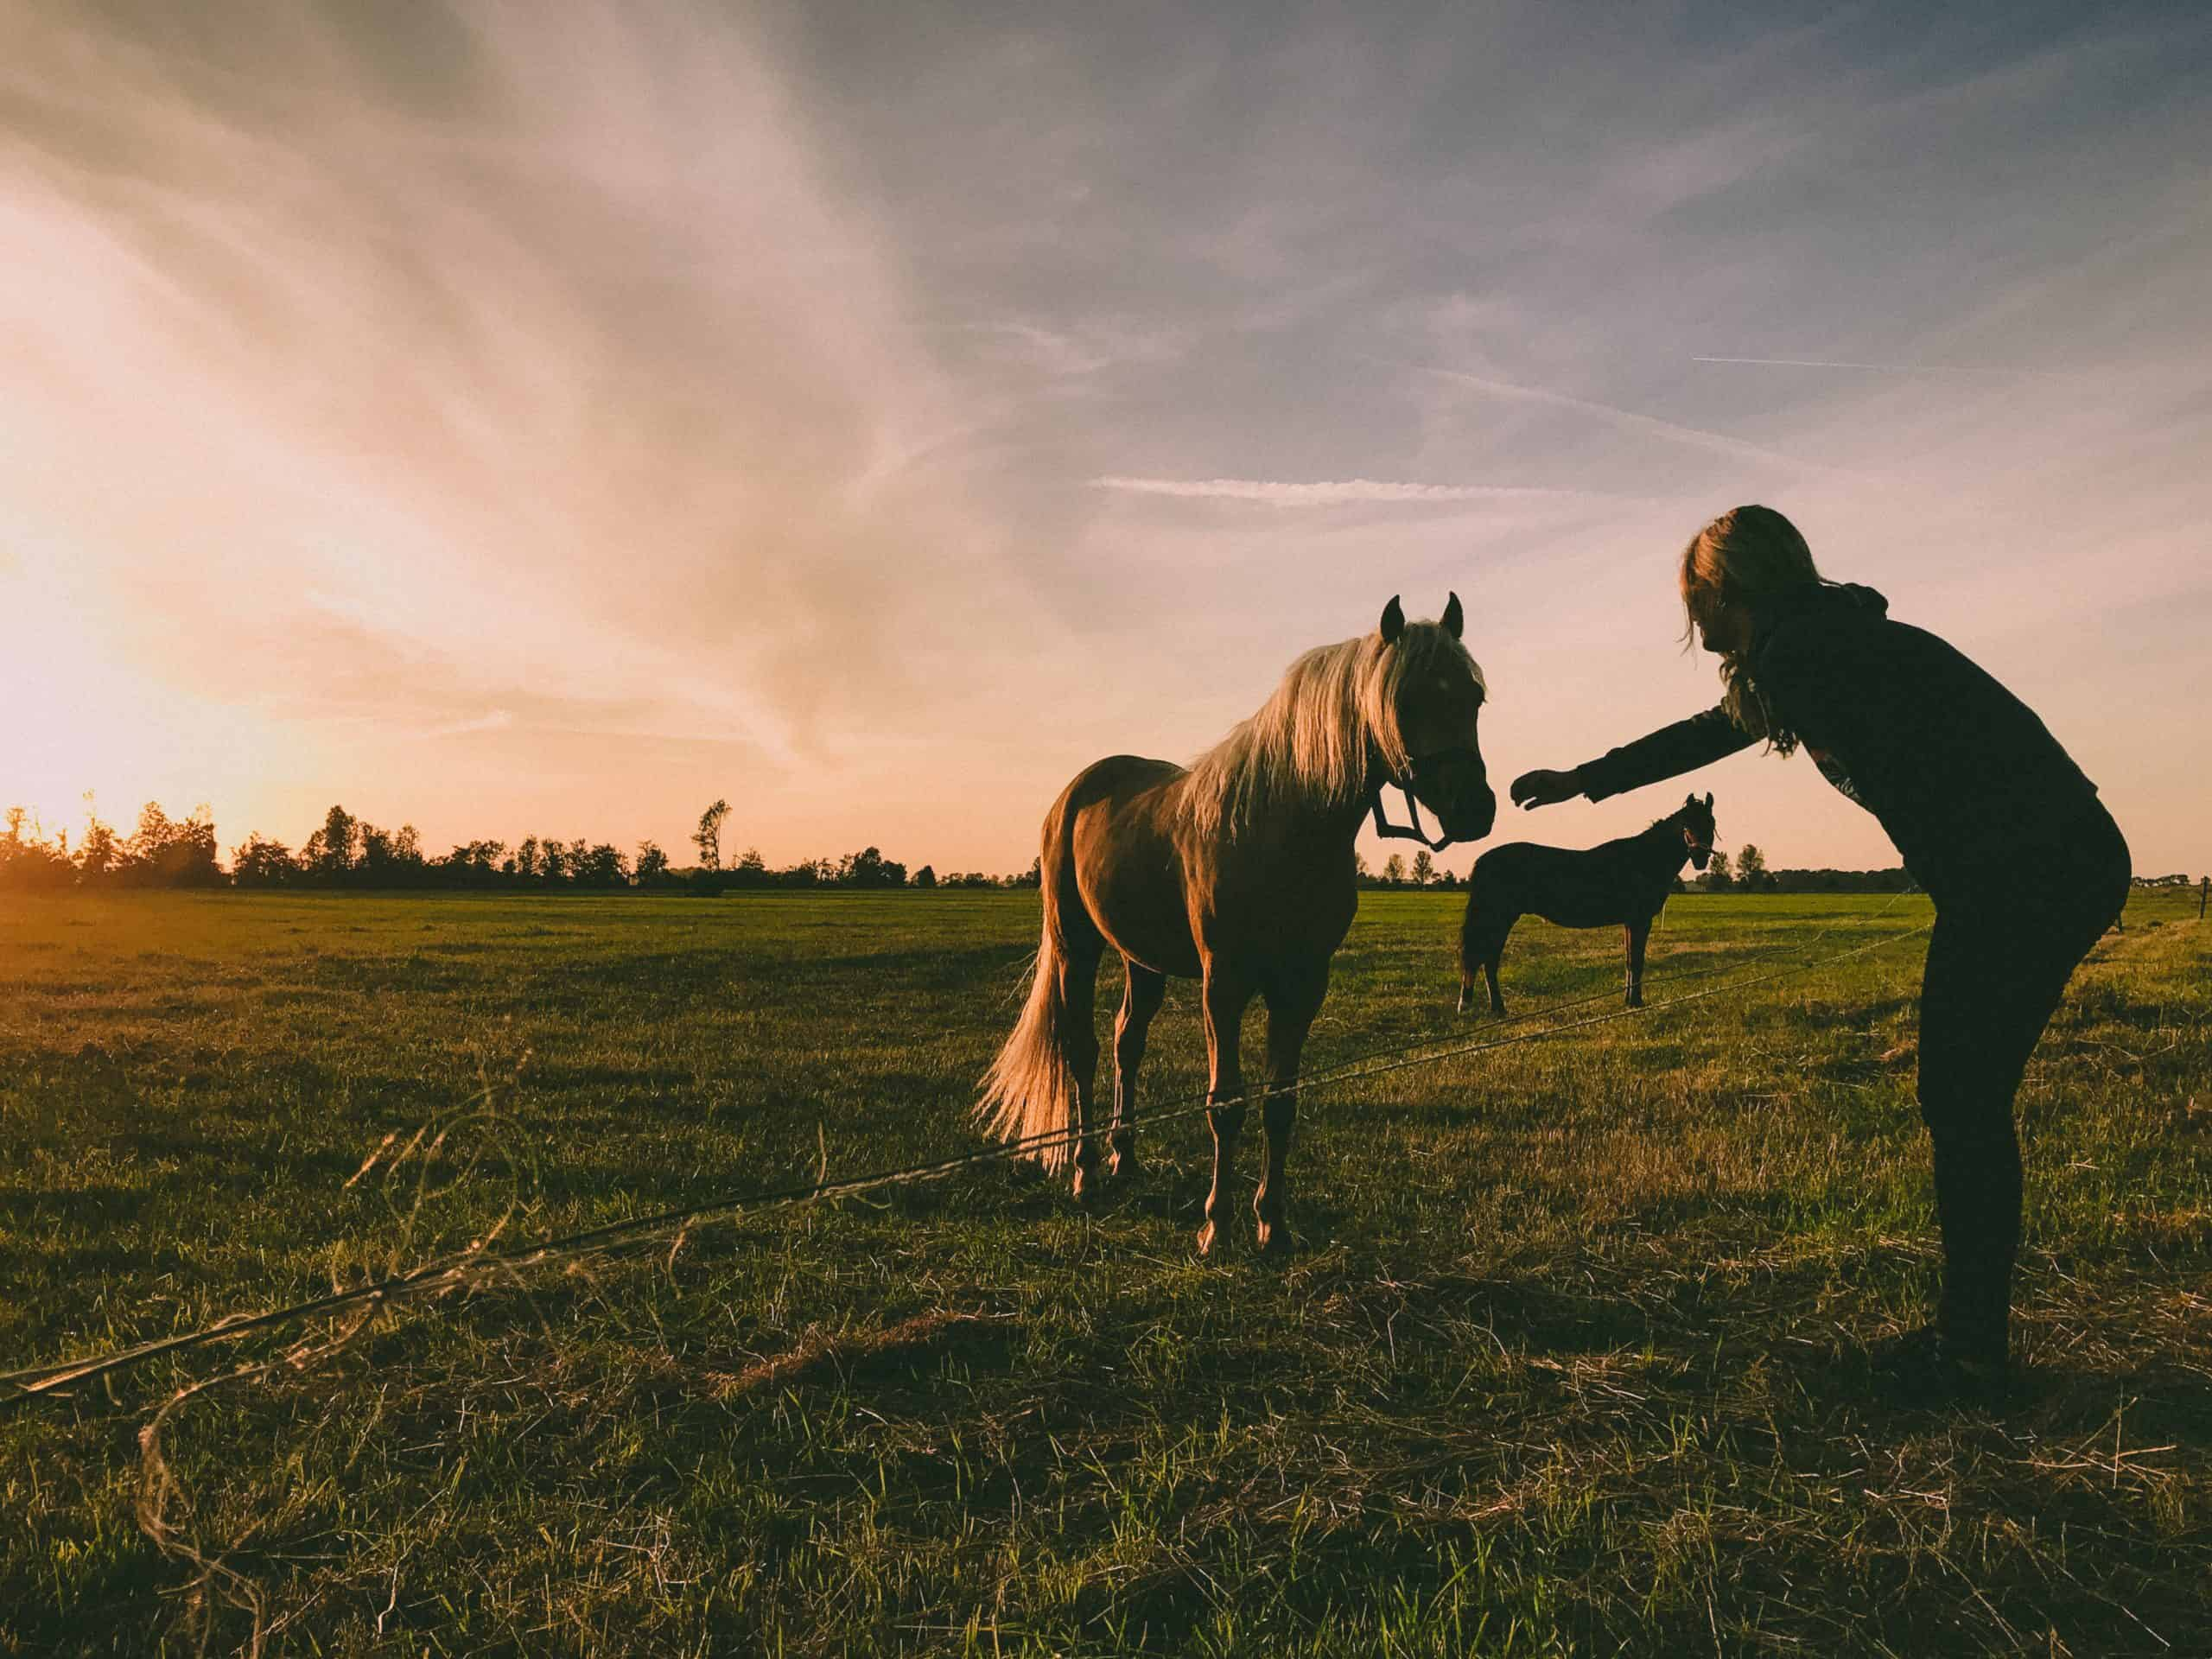 Canva - Photo of Person Near Horse